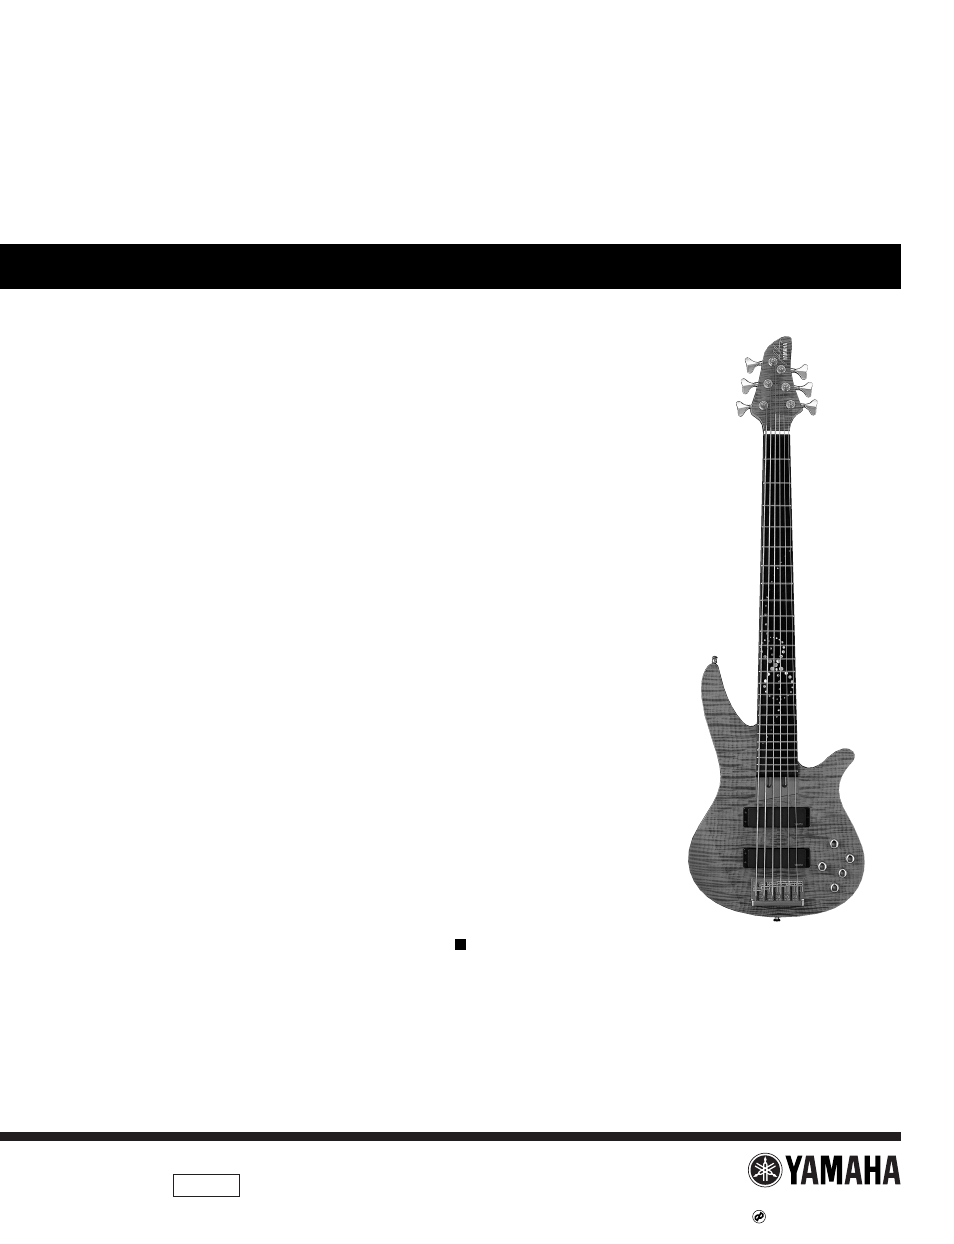 Yamaha Electric Bass Guitar Wiring Diagram Starting Know About On Ibanez Images Gallery Rbx 6jm User Manual 8 Pages Rh Manualsdir Com